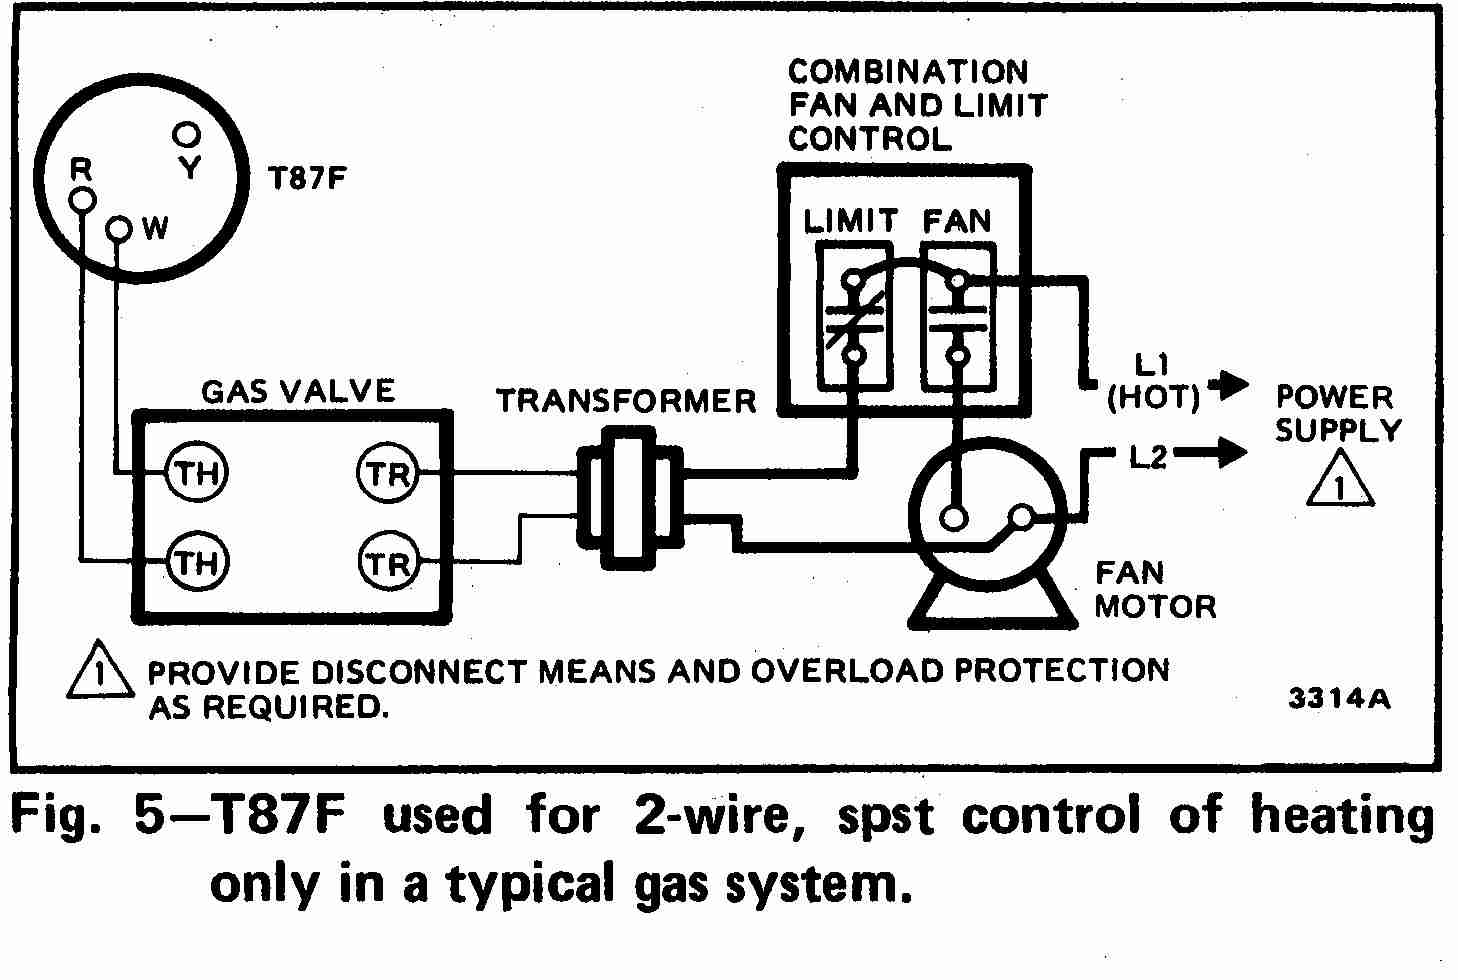 guide to wiring connections for room thermostats honeywell t87f thermostat wiring diagram for 2 wire spst control of heating only in